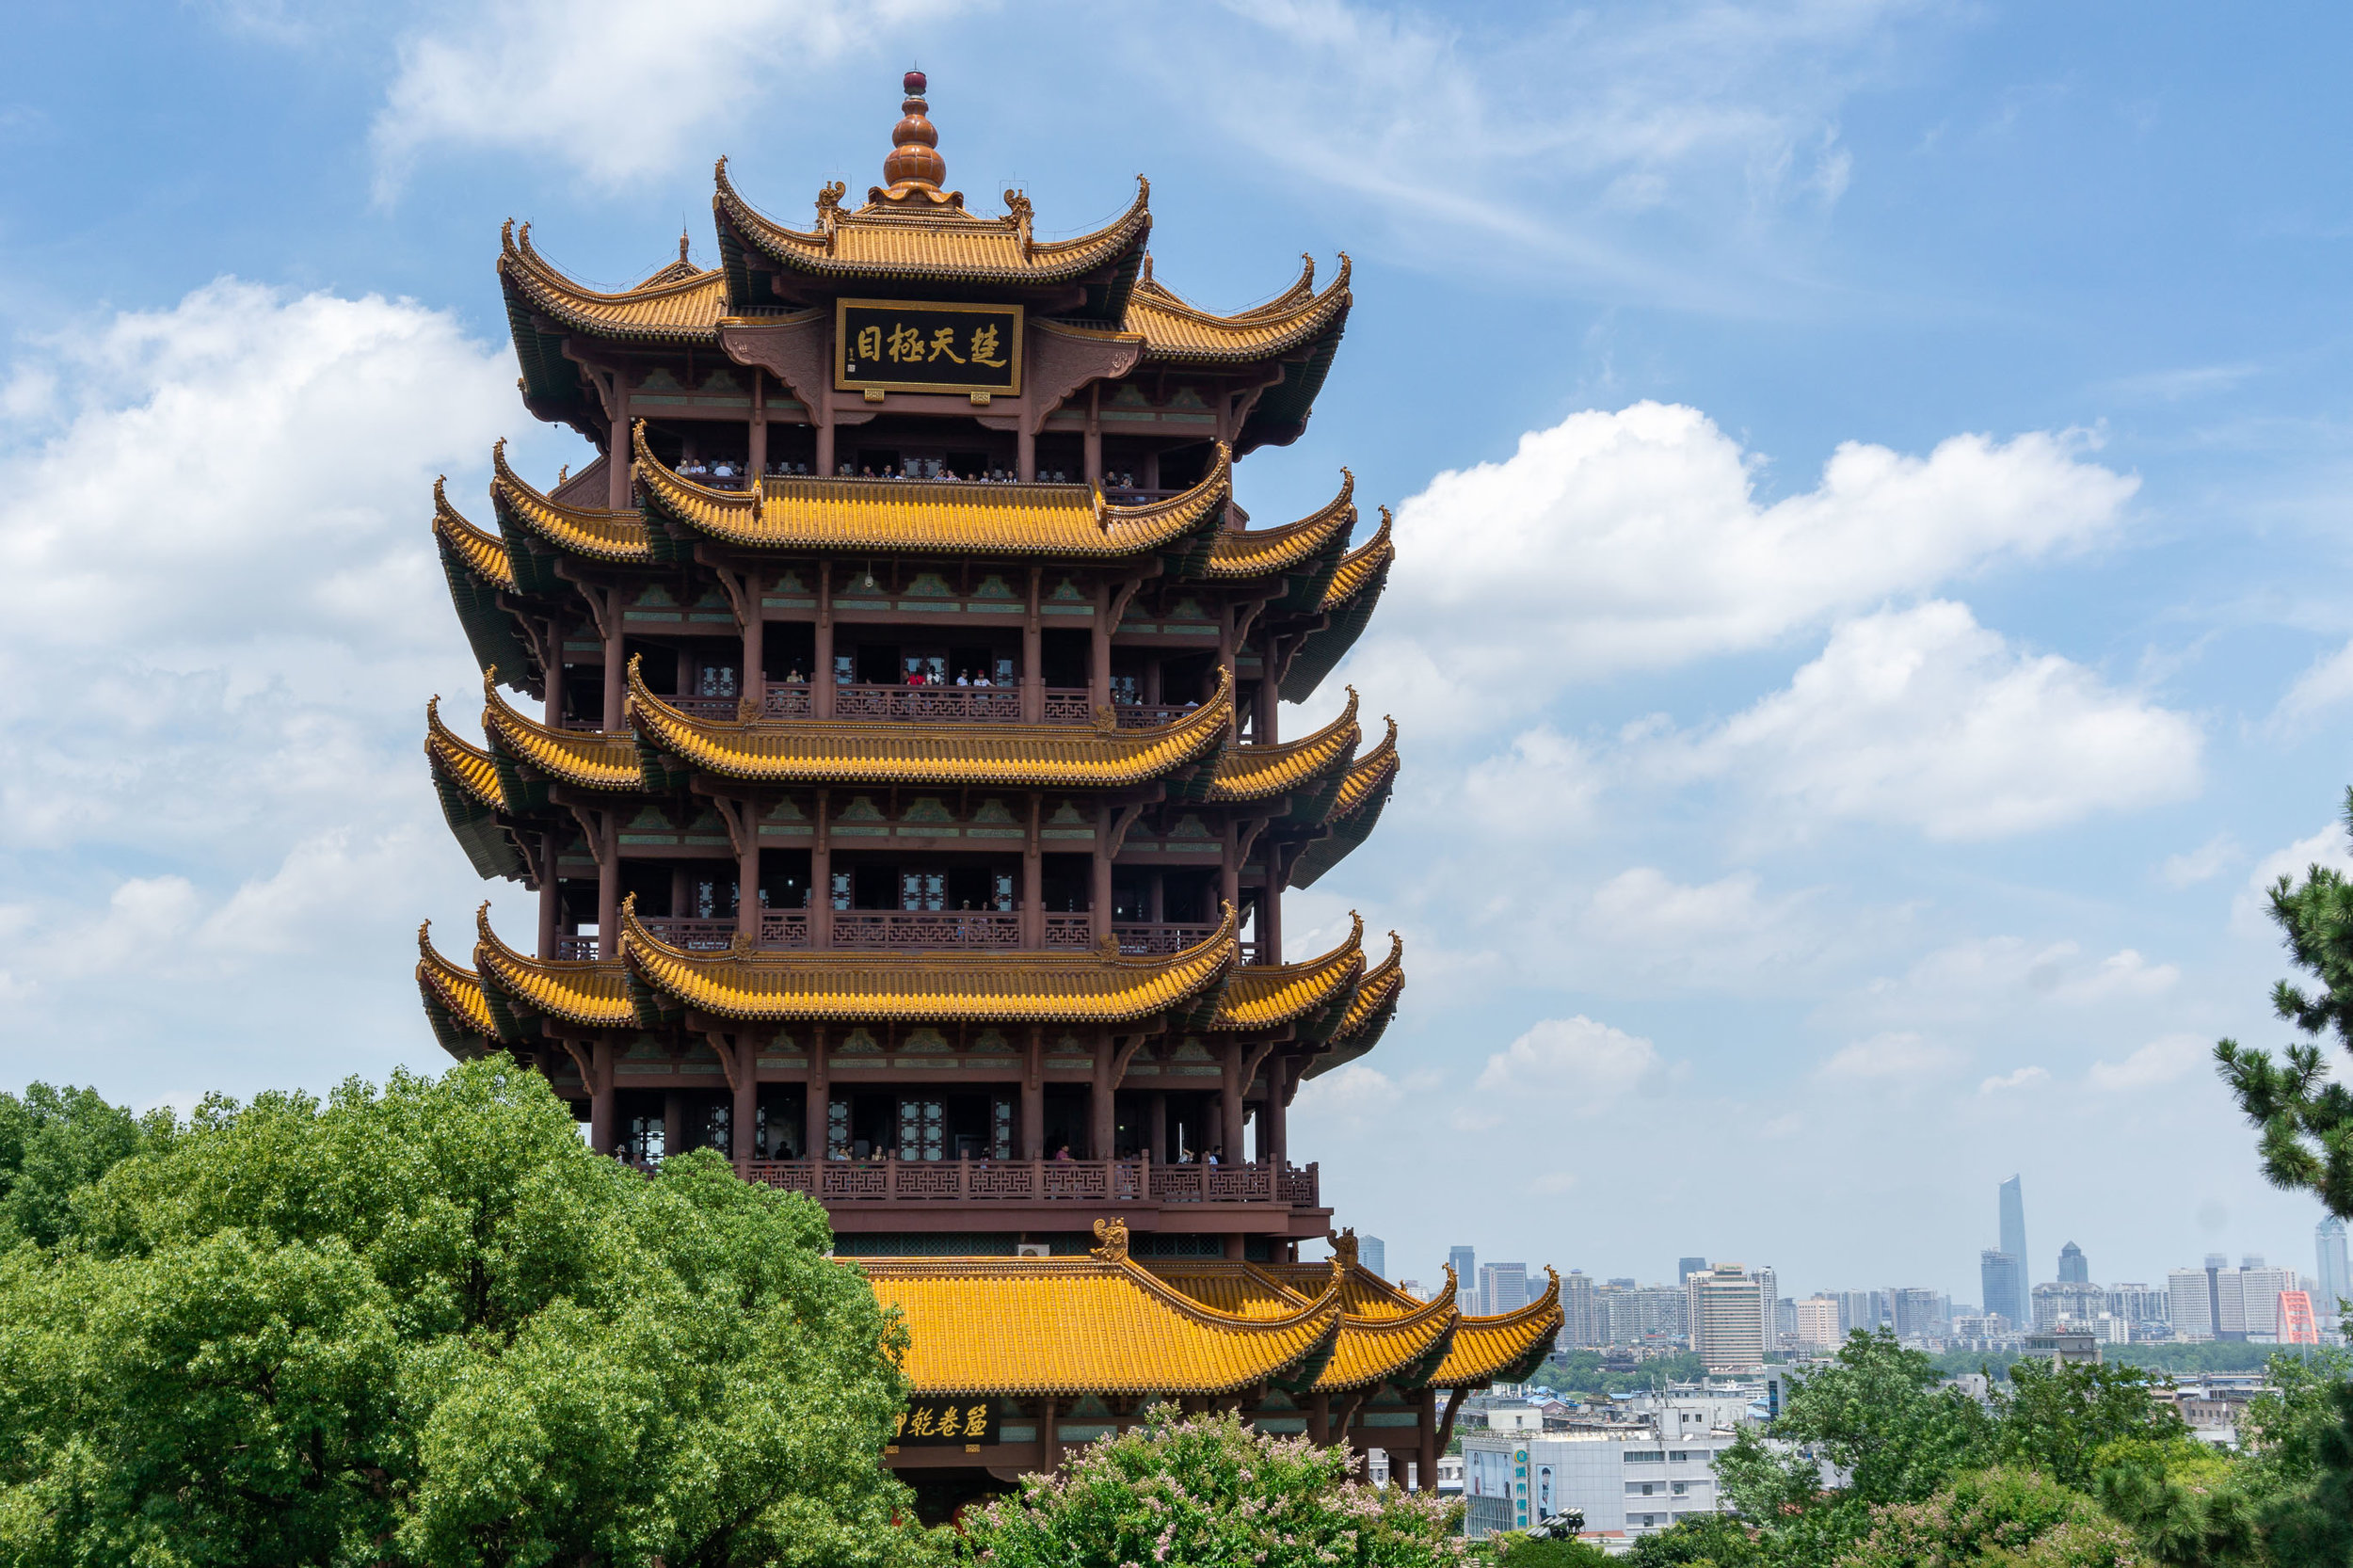 Yellow Crane Tower, Wuhan, China